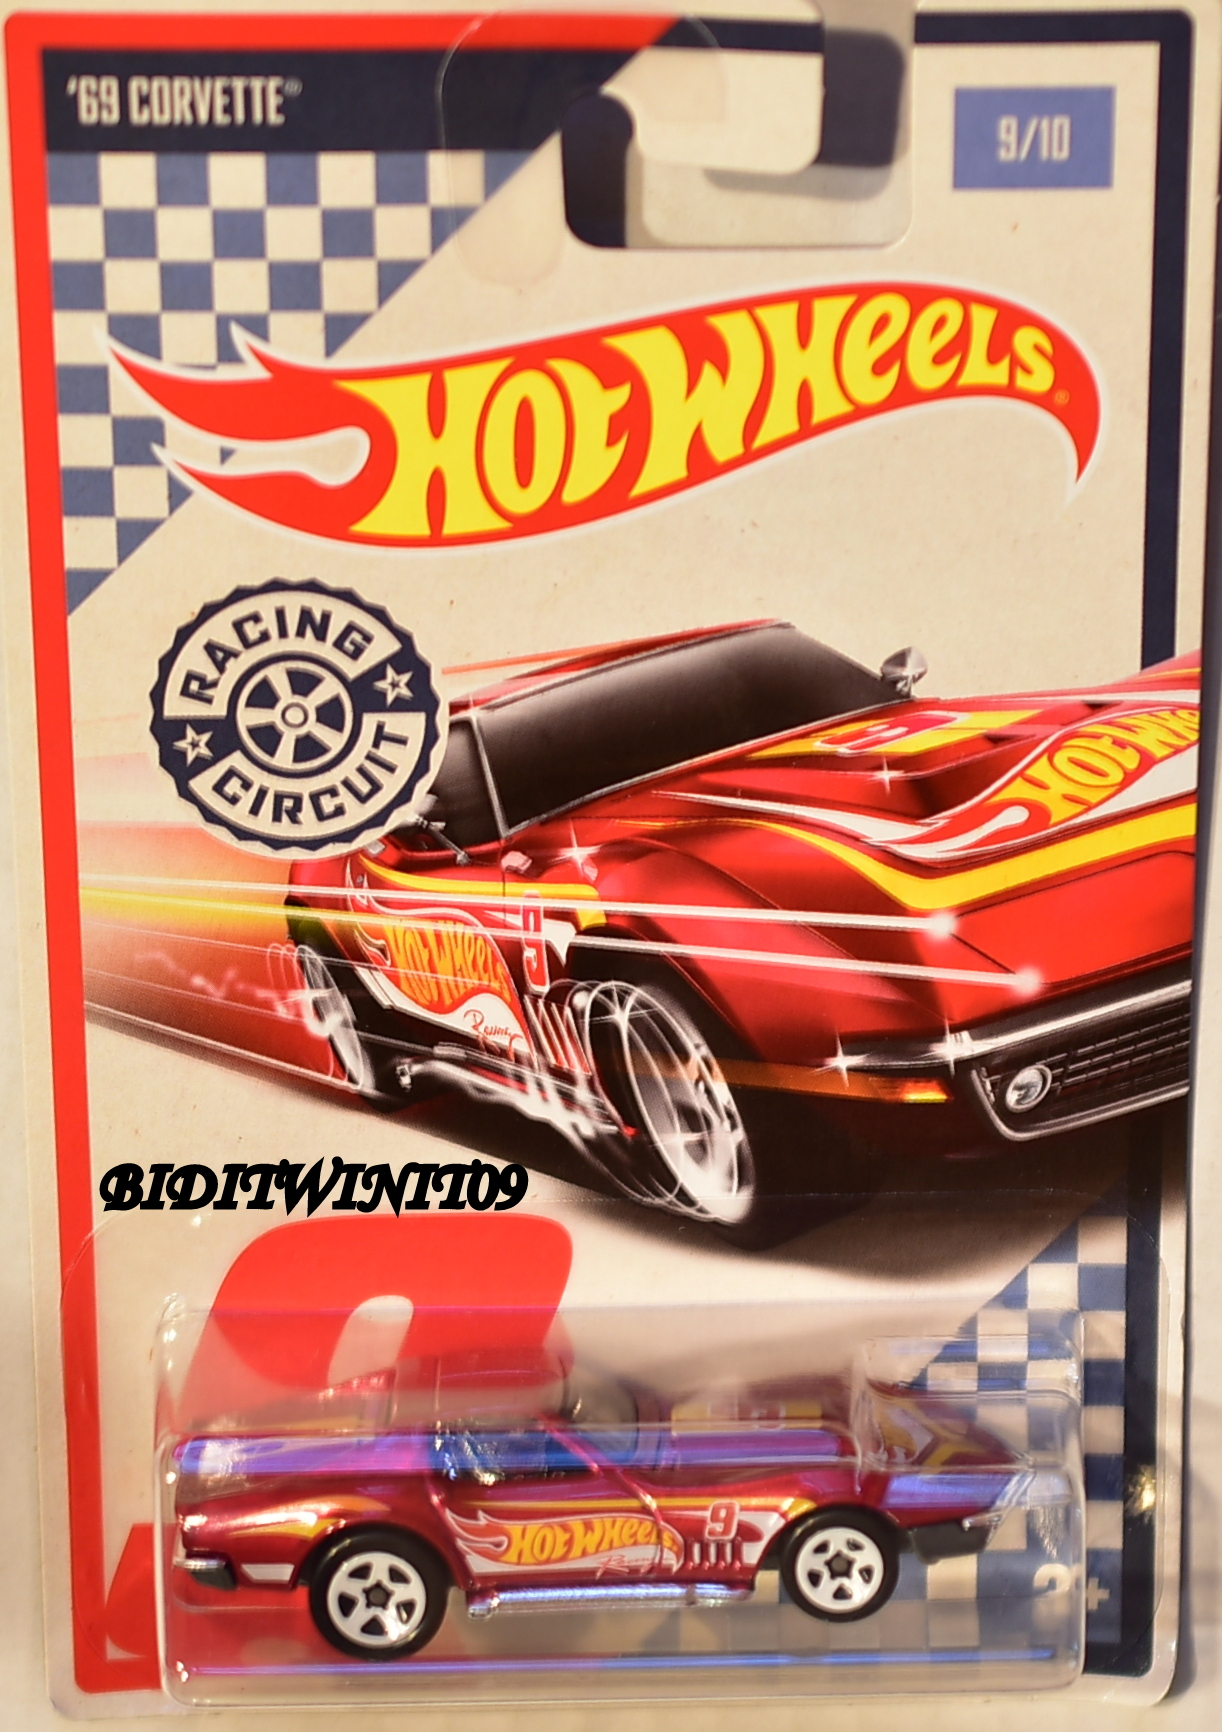 hot wheels racing circuit 9 10 39 69 corvette 0000859. Black Bedroom Furniture Sets. Home Design Ideas